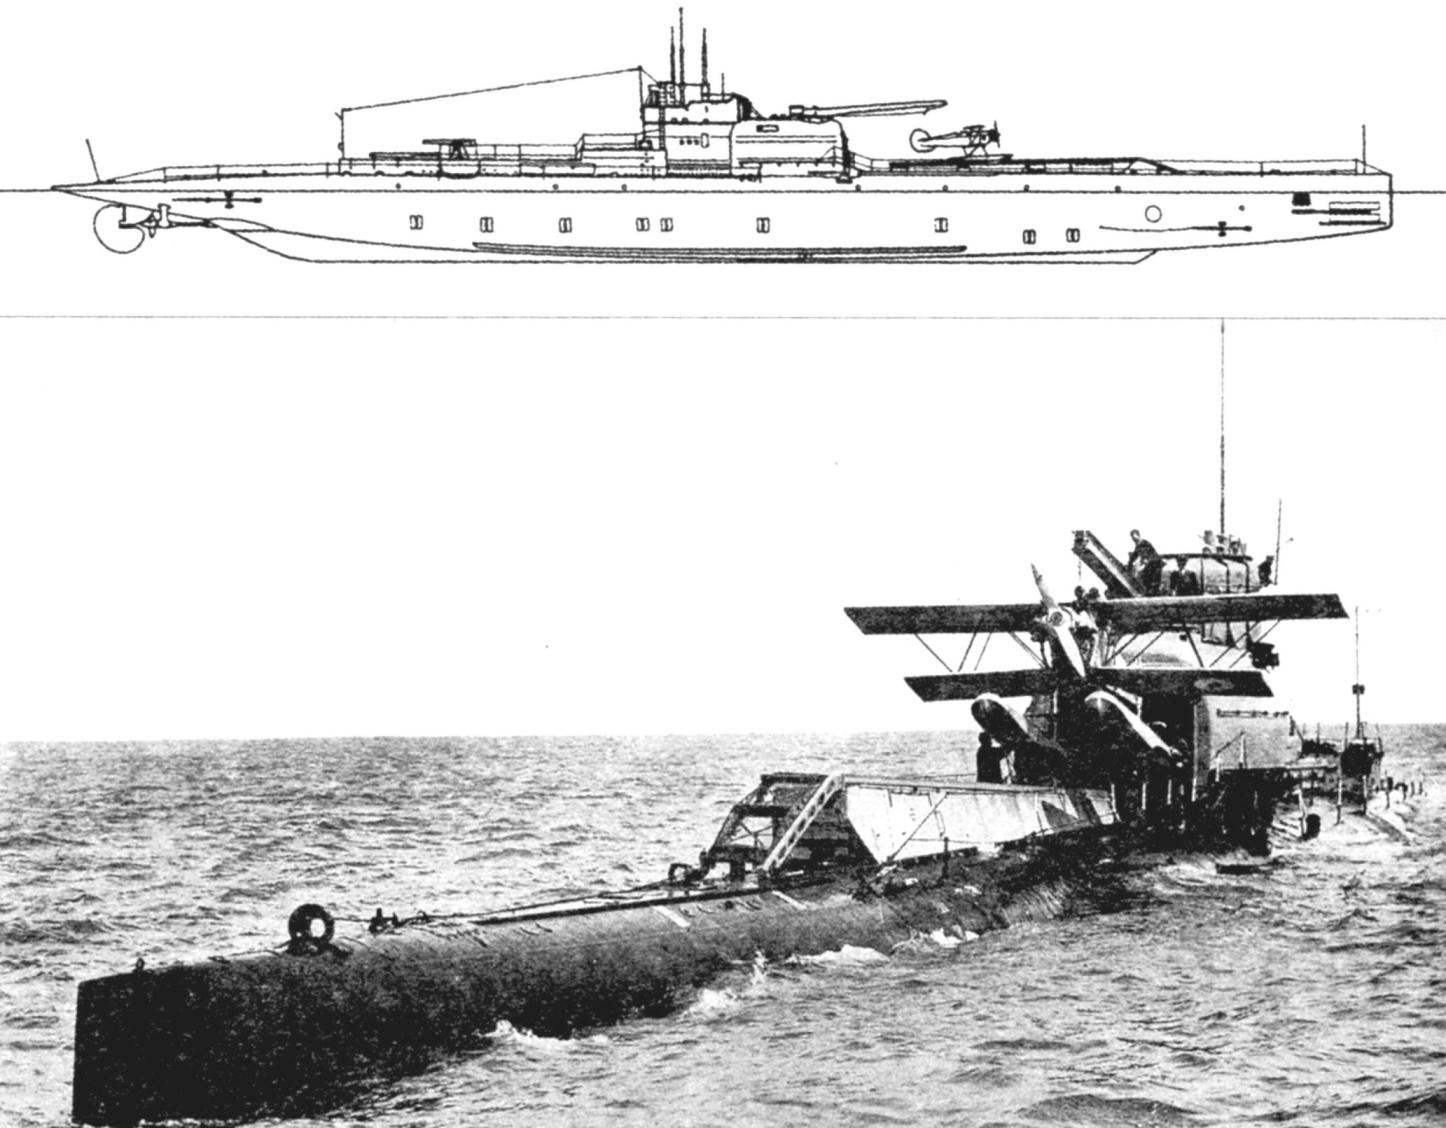 Submarine aircraft carrier